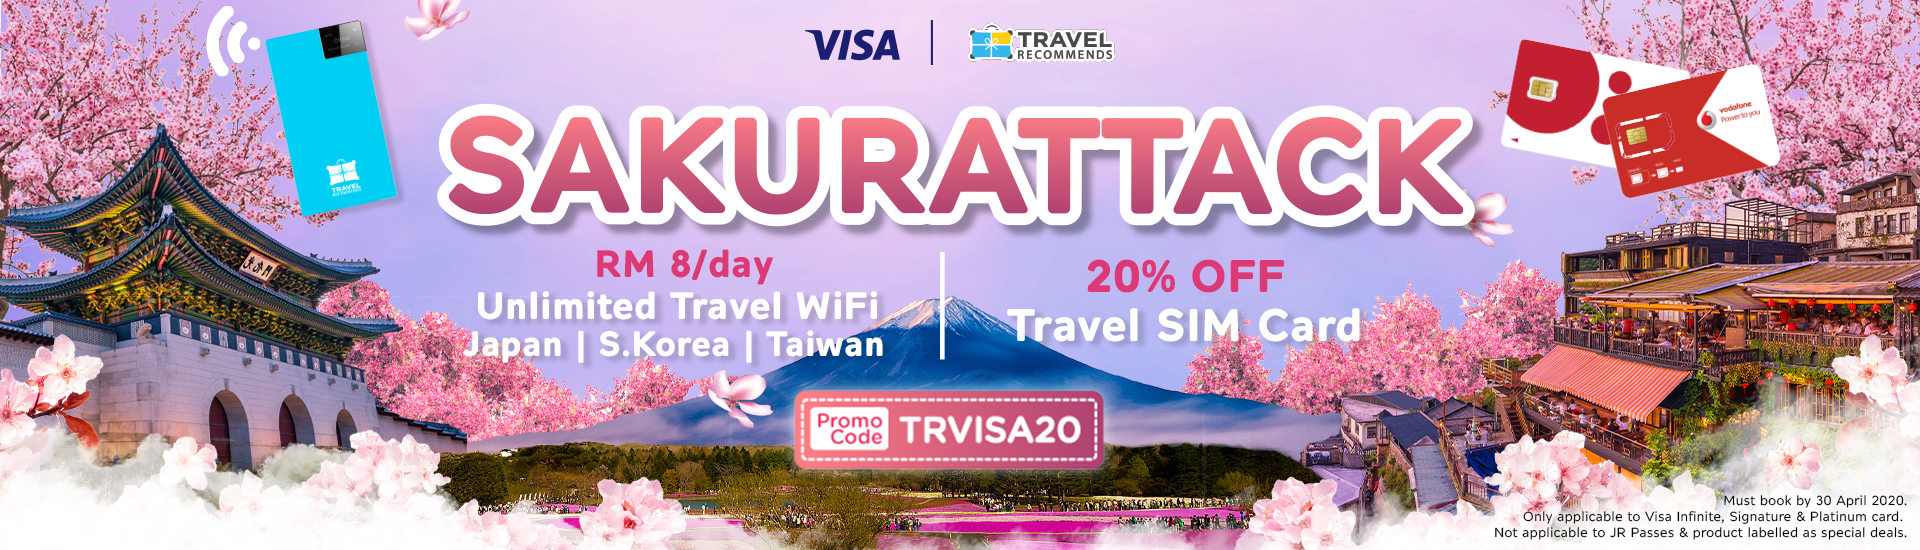 Sakura attack cherry blossom season 20% off visa sitewide